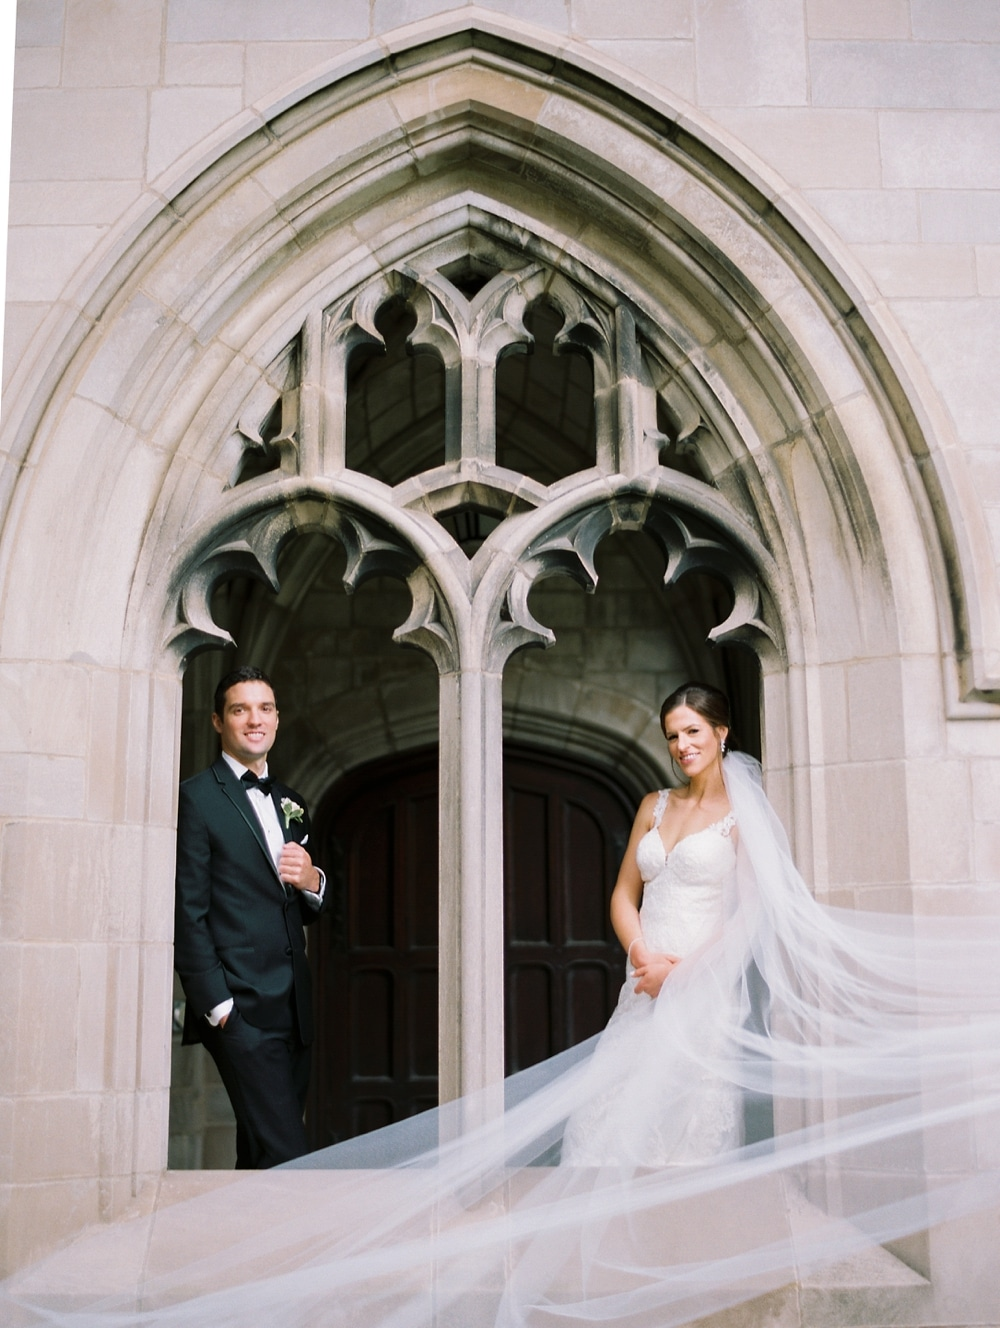 kristin-la-voie-photography-university-of-chicago-wedding-bridgeport-art-center-bond-chapel-117